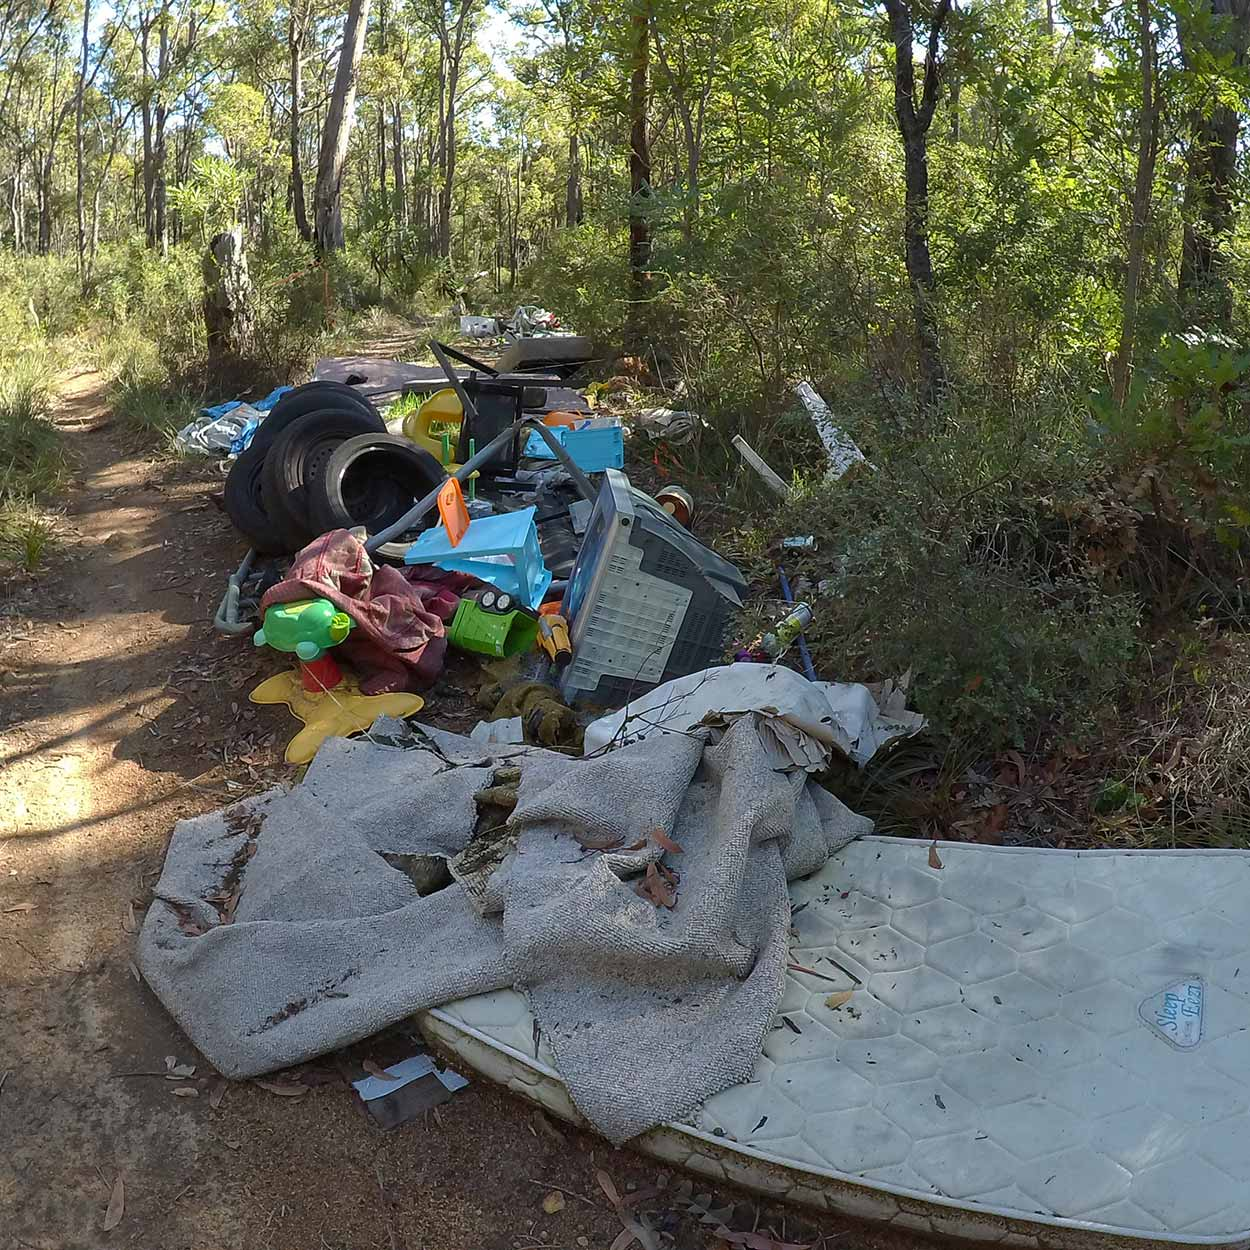 Dumped rubbish in bushland, Perth, Western Australia